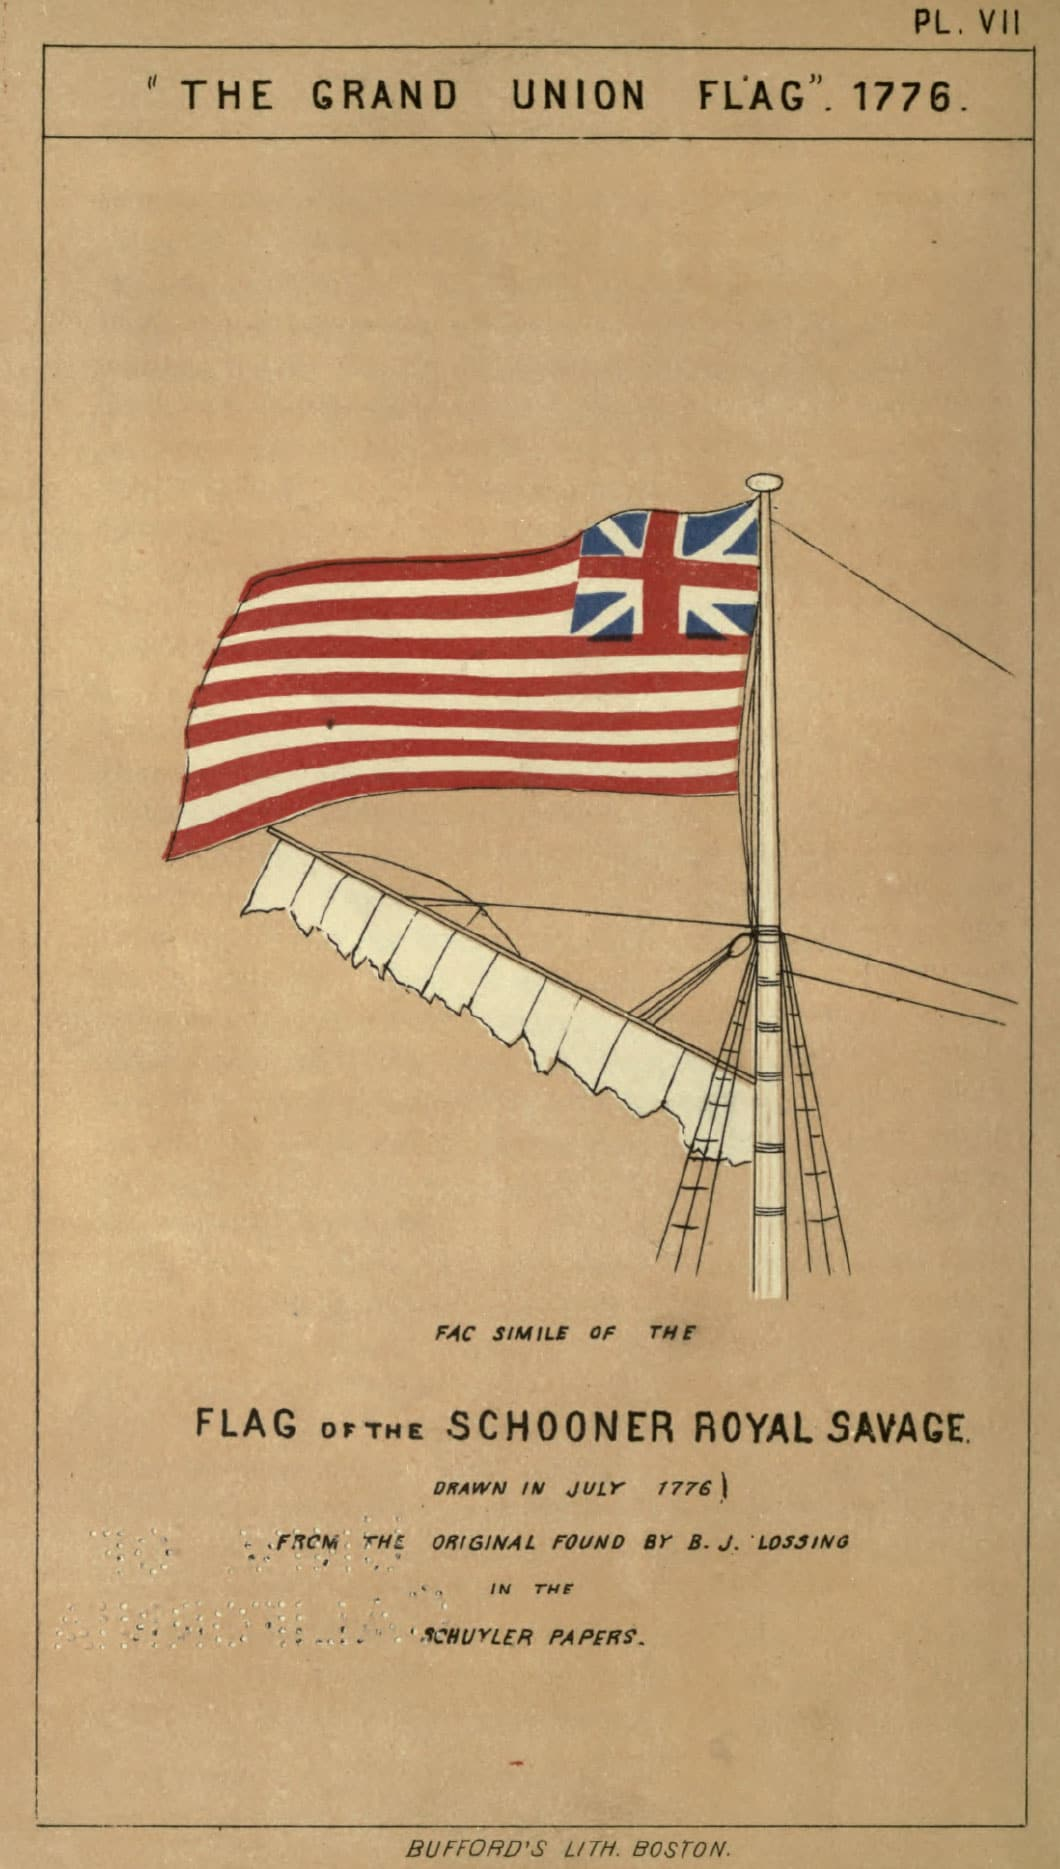 The Grand Union Flag - 1776. Fac Simile of the Flag of the Schooner Royal Savage. Drawn in July 1776. From the Original Found By B.J. Lossing in the Schuyler Papers.